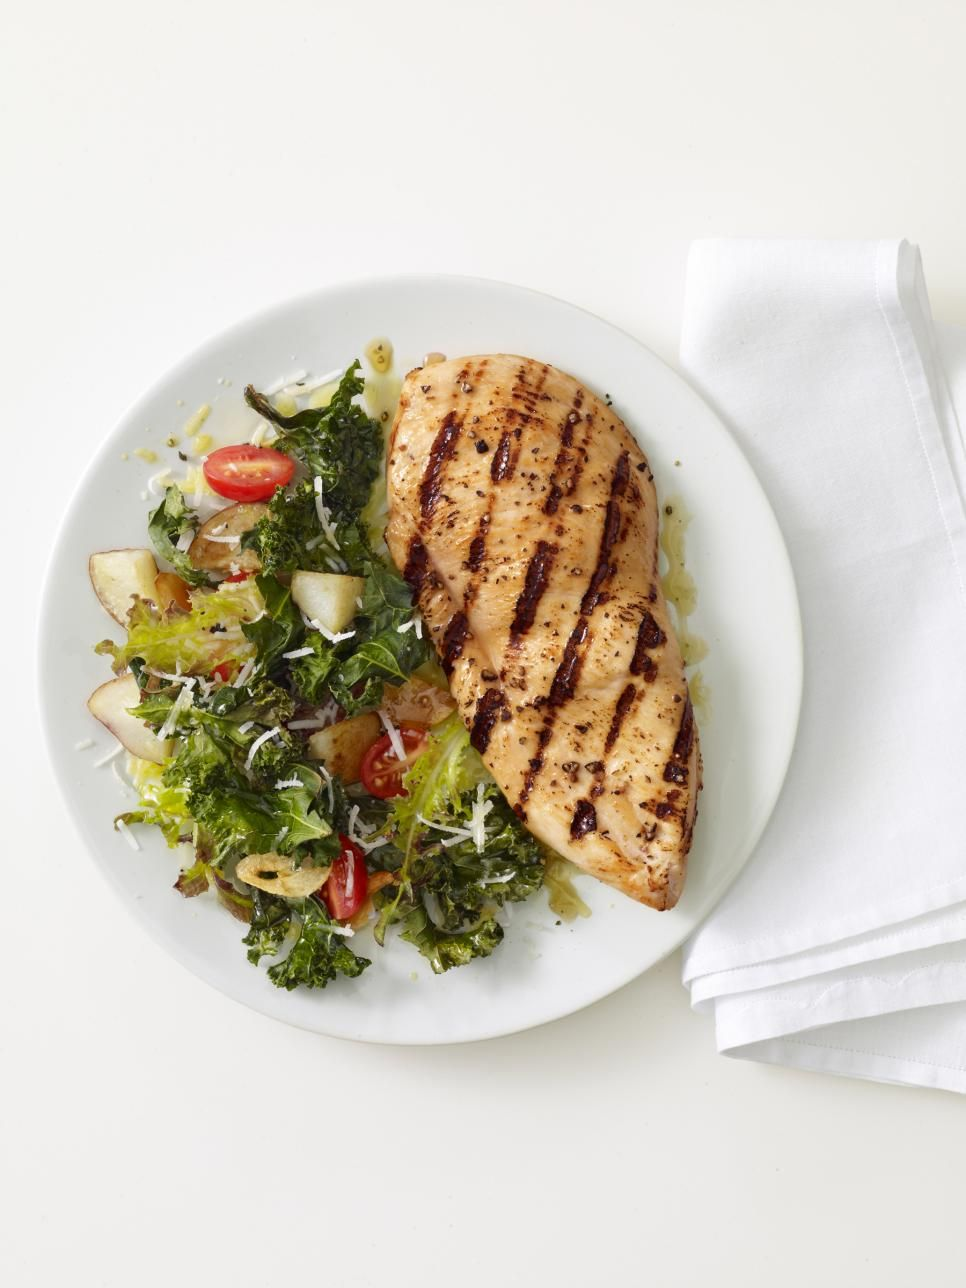 Healthy chicken recipes food network weeknight recipes healthy classic chicken dinners get a healthy makeover in these simple weeknight recipes for chicken and dumplings forumfinder Image collections